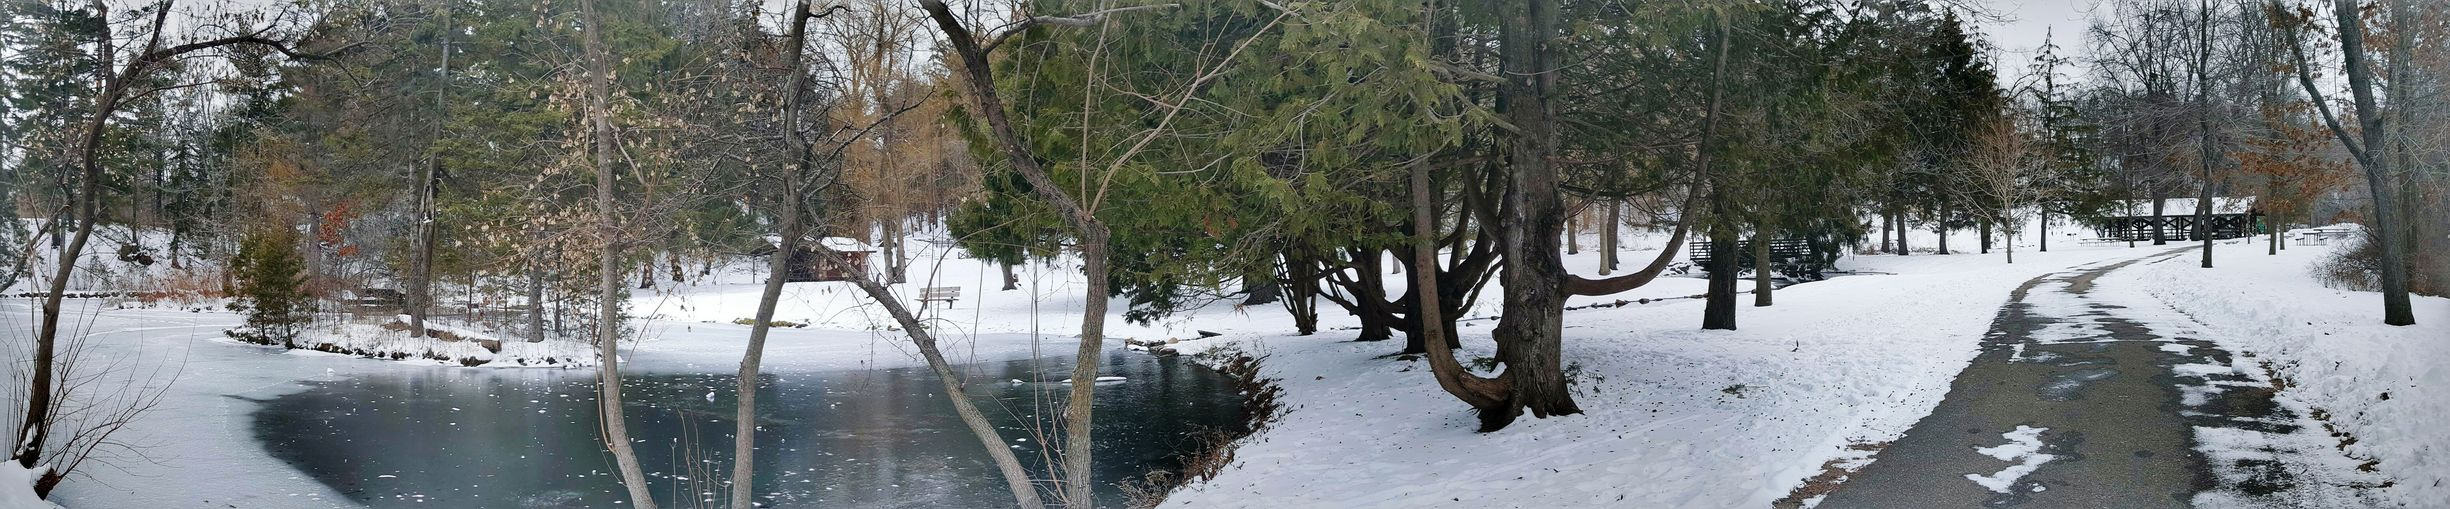 Thankful to have learned about this special place.. Peace Winter Walk Natural Beauty Trees And Water